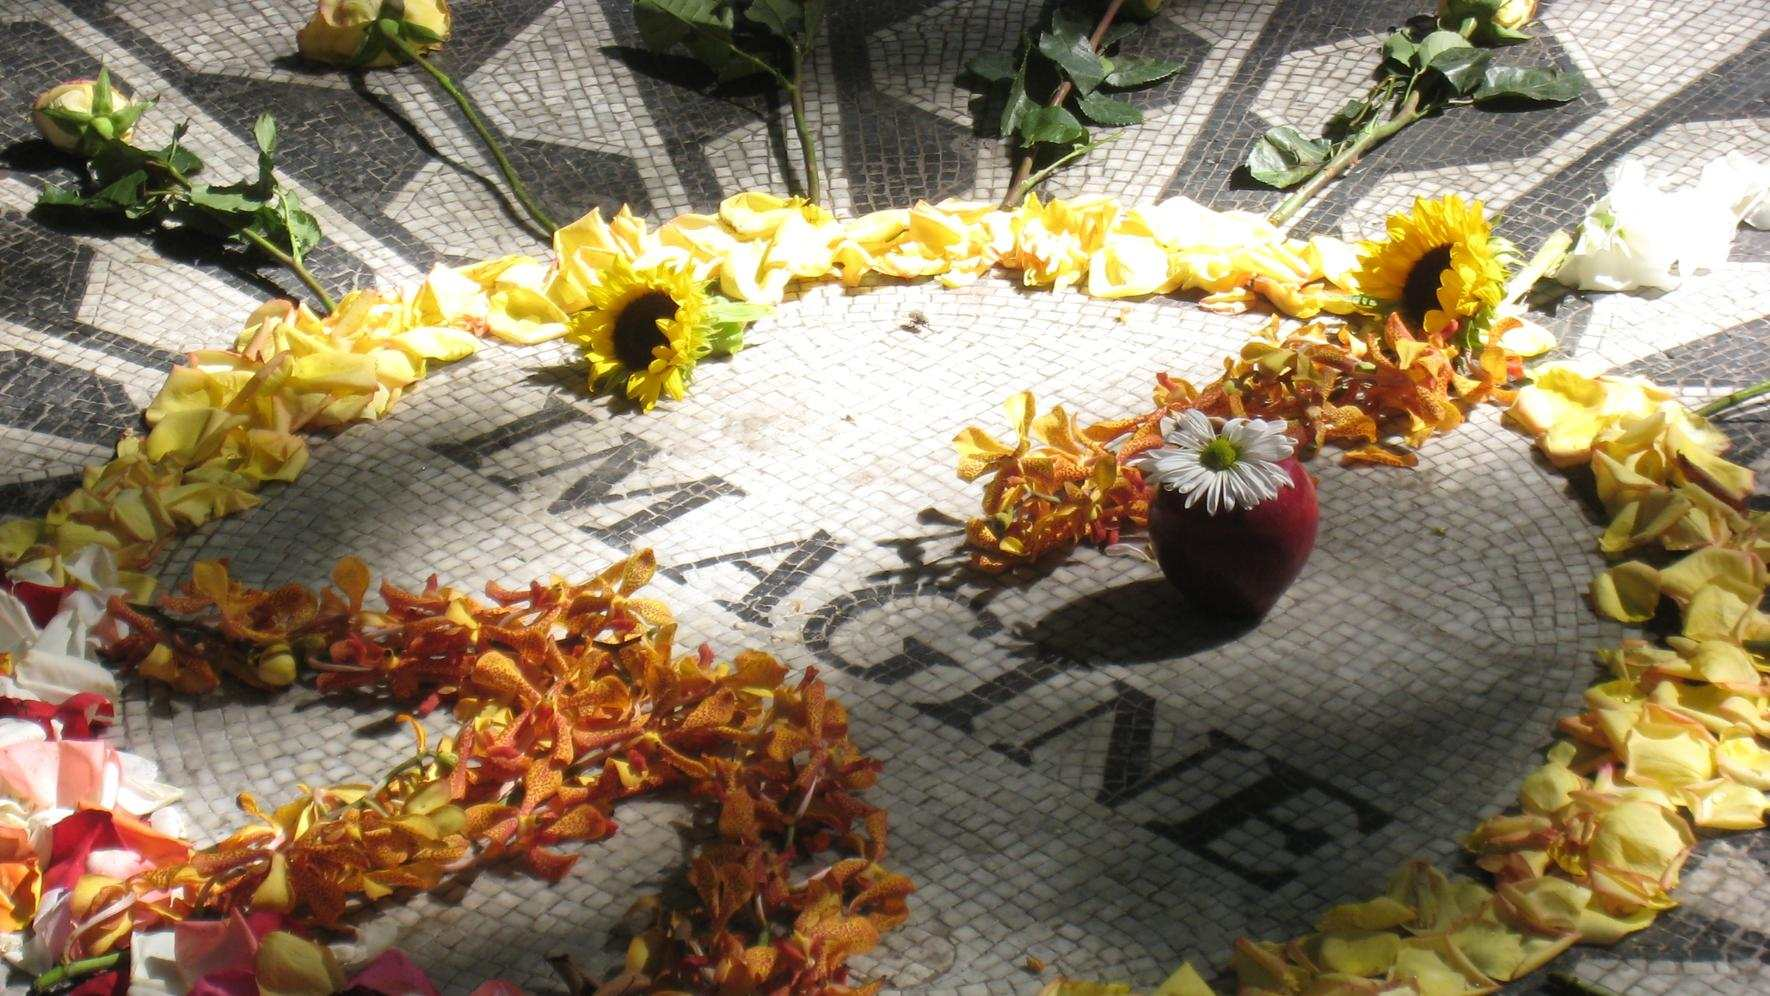 IMAGINE Mosaic - Strawberry Fields (John Lennon Memorial) im Central Park West (Park-Eingang West 72nd Street)